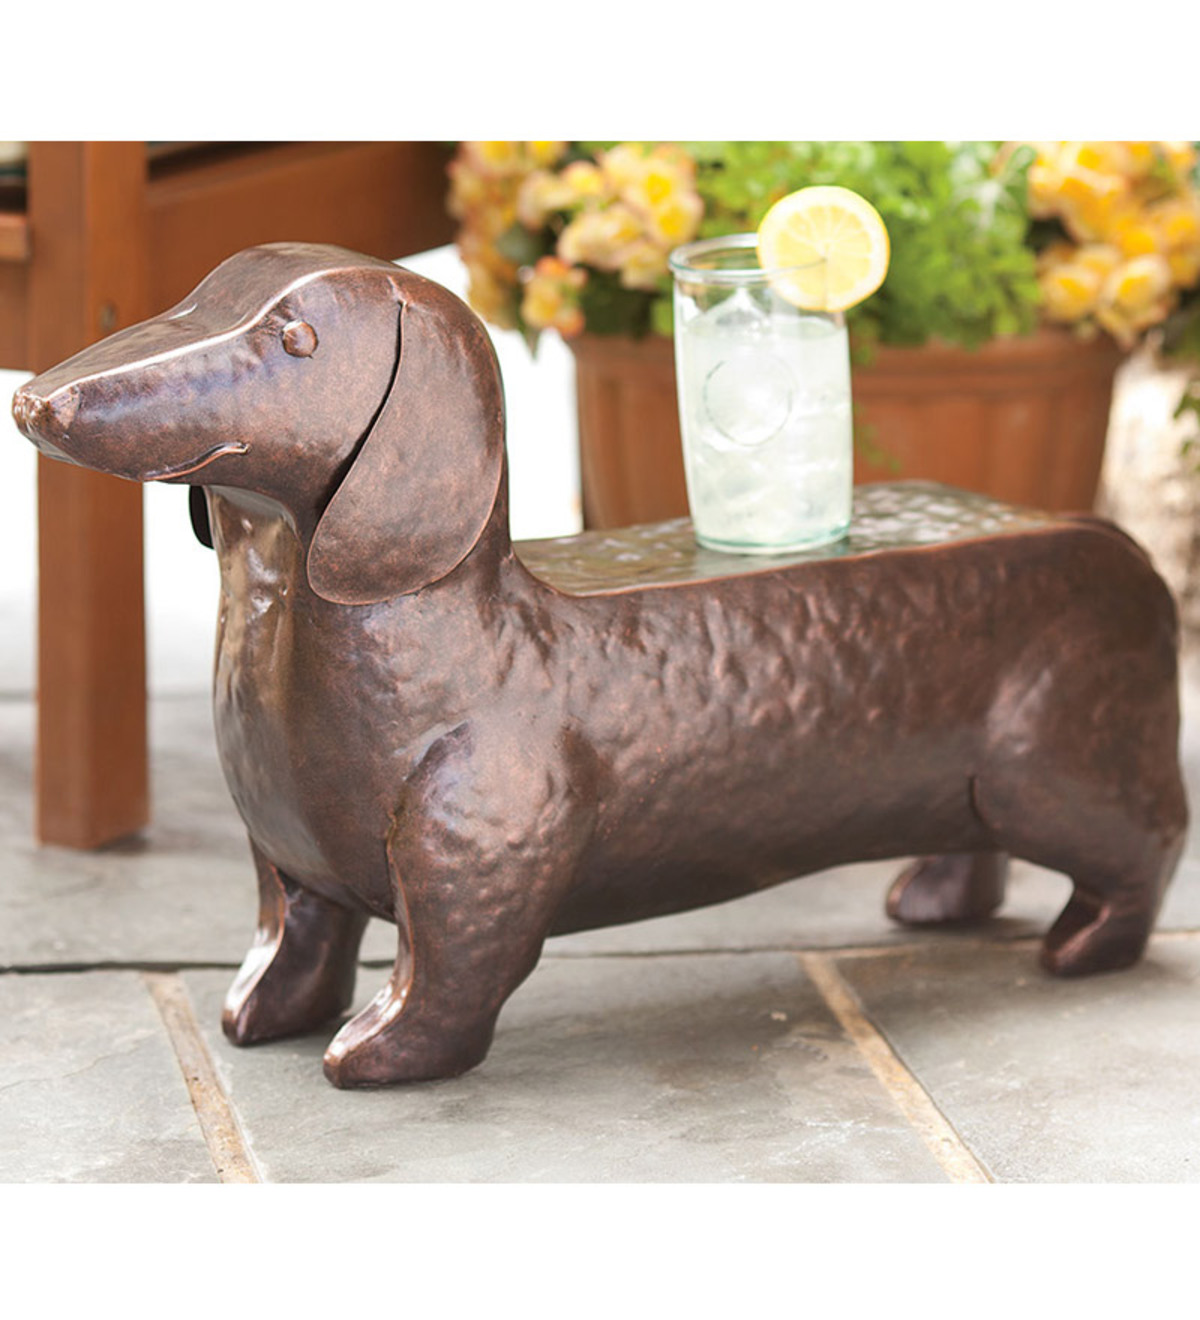 hand hammered iron dachshund dog accent table plowhearth metal round oak side grey tufted chair cabinet paint glass with shelf washable tablecloth dining room and sets linen small